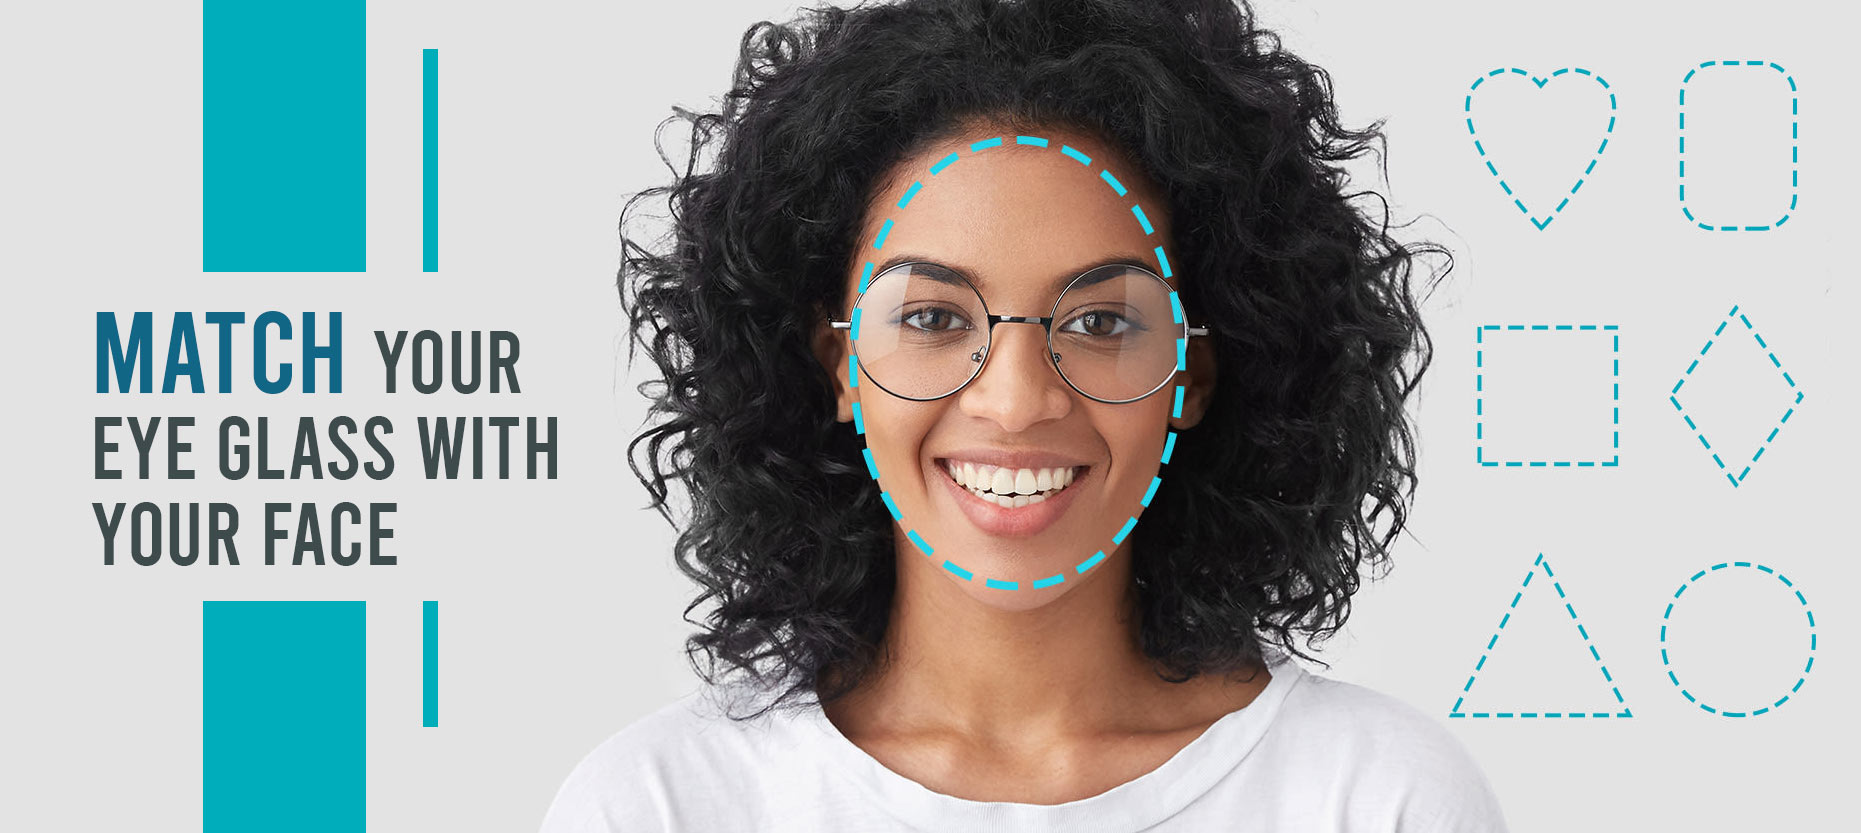 How to Find Best Eye Glasses for Your Face Shape